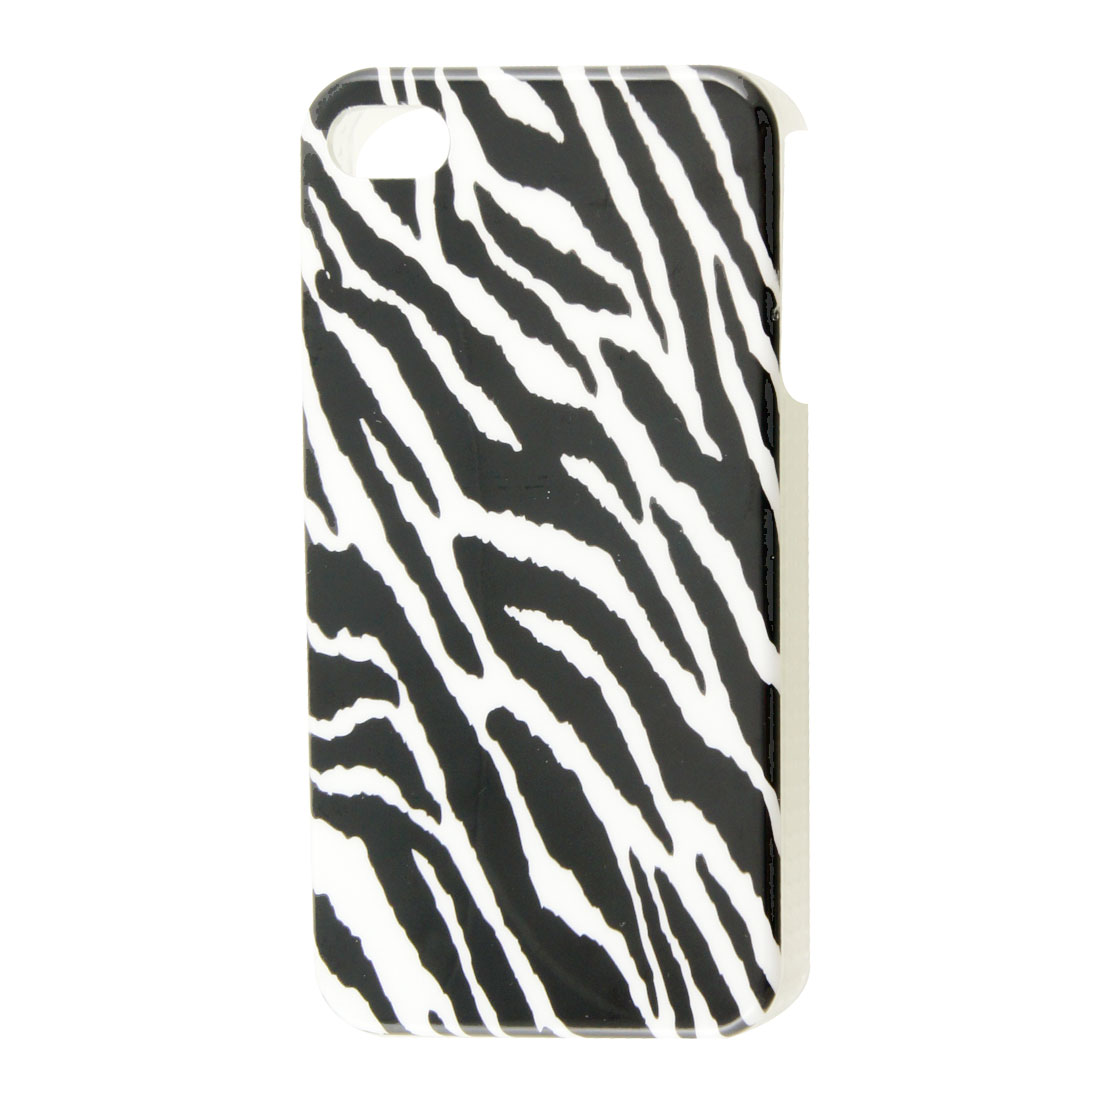 Plastic White Black Zebra Print IMD Back Shell for iPhone 4 4G 4S 4GS